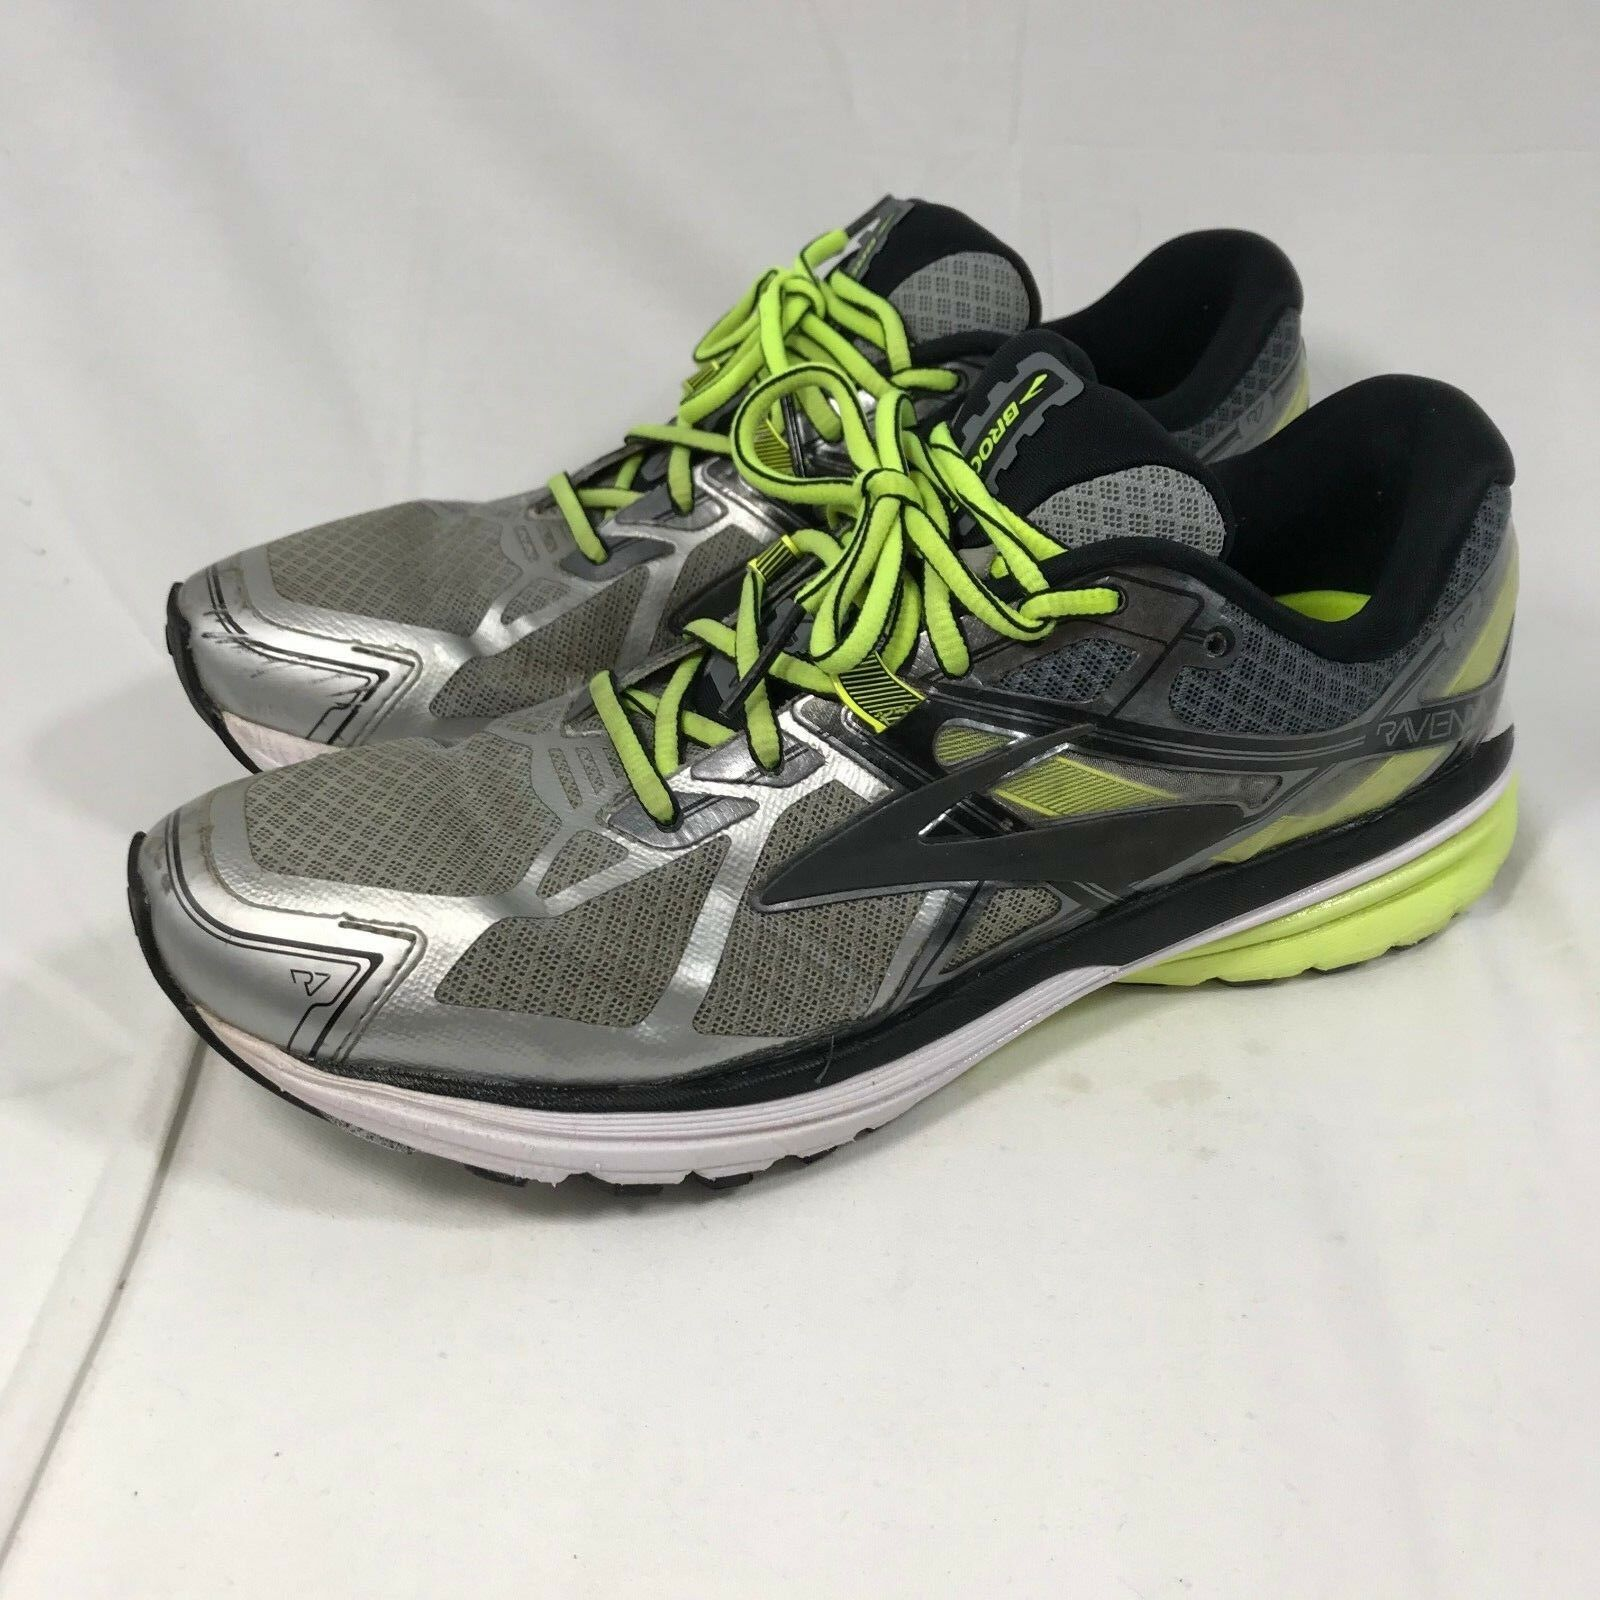 6f2ce8bd56dfe Ravenna 7 Running shoes Size 9 BROOKS Men s noclvu4502-Athletic ...